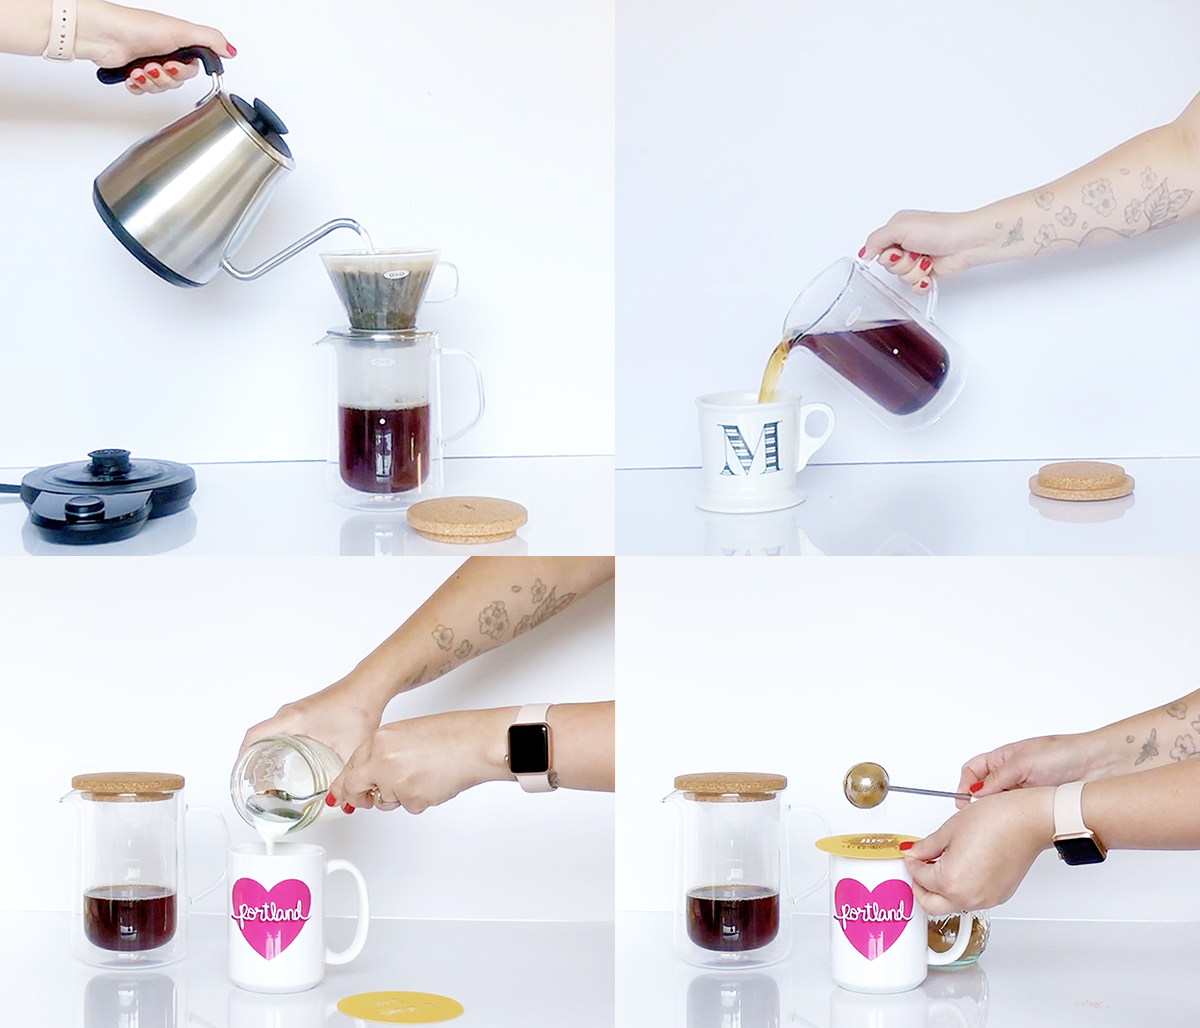 How to Make Latte Art with Free Downloadable Stencils + Two Frothing Milk Methods